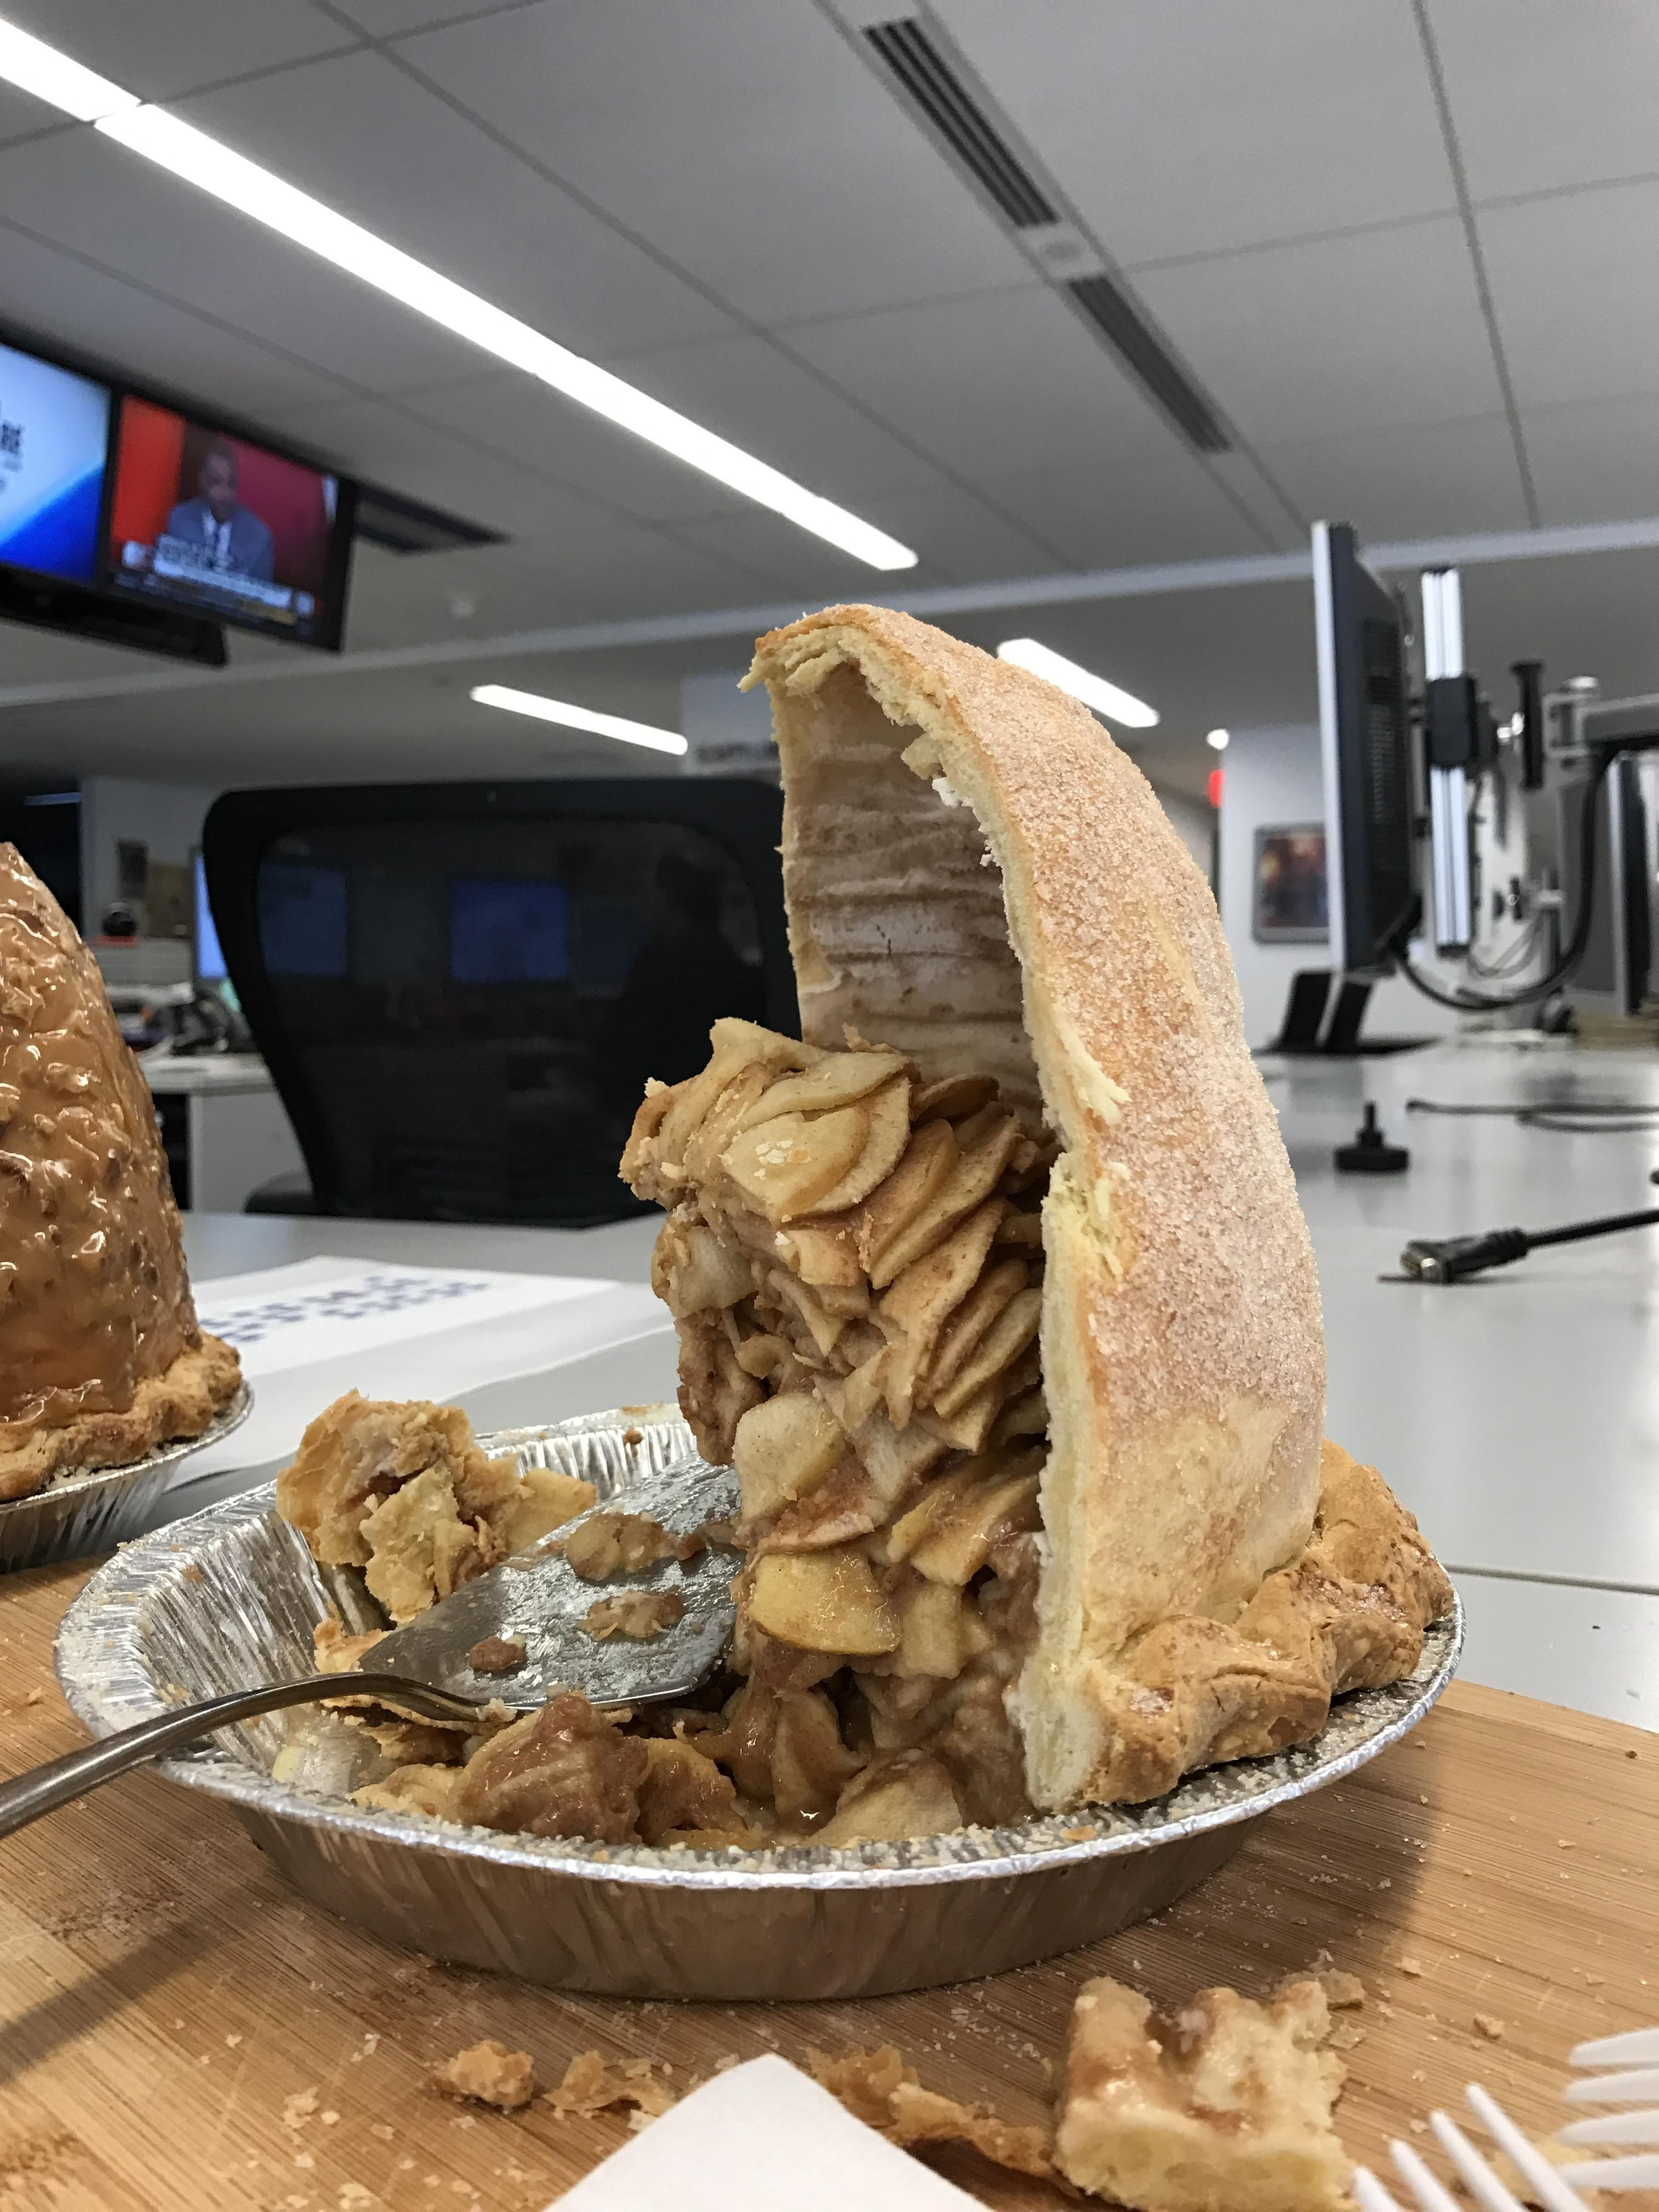 Apple Pie Porn i ate] this huge apple pie #recipes #food #cooking